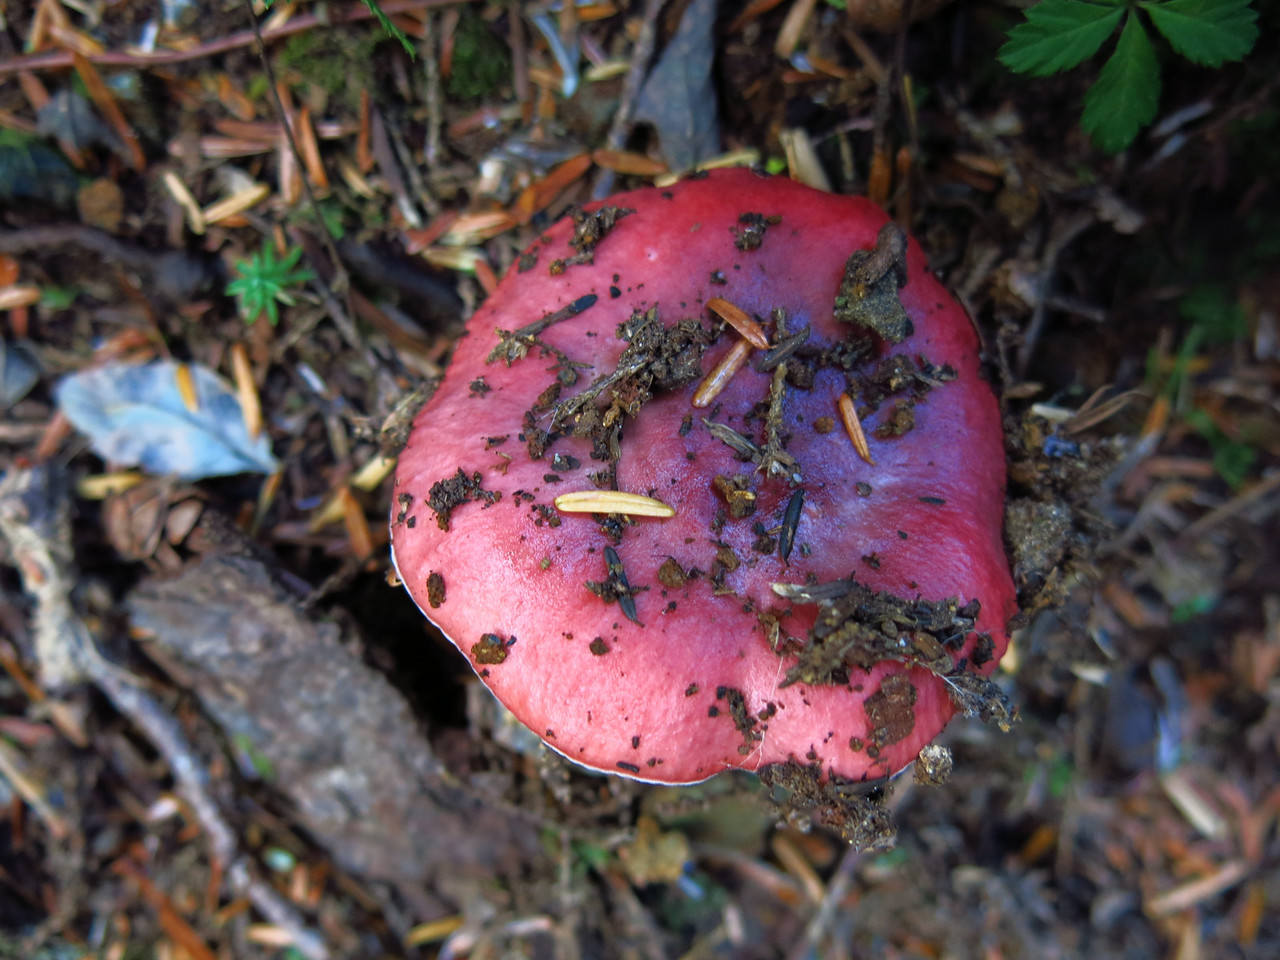 This red mushroom certianly appears to have popped up from the needle covered earth at its base.